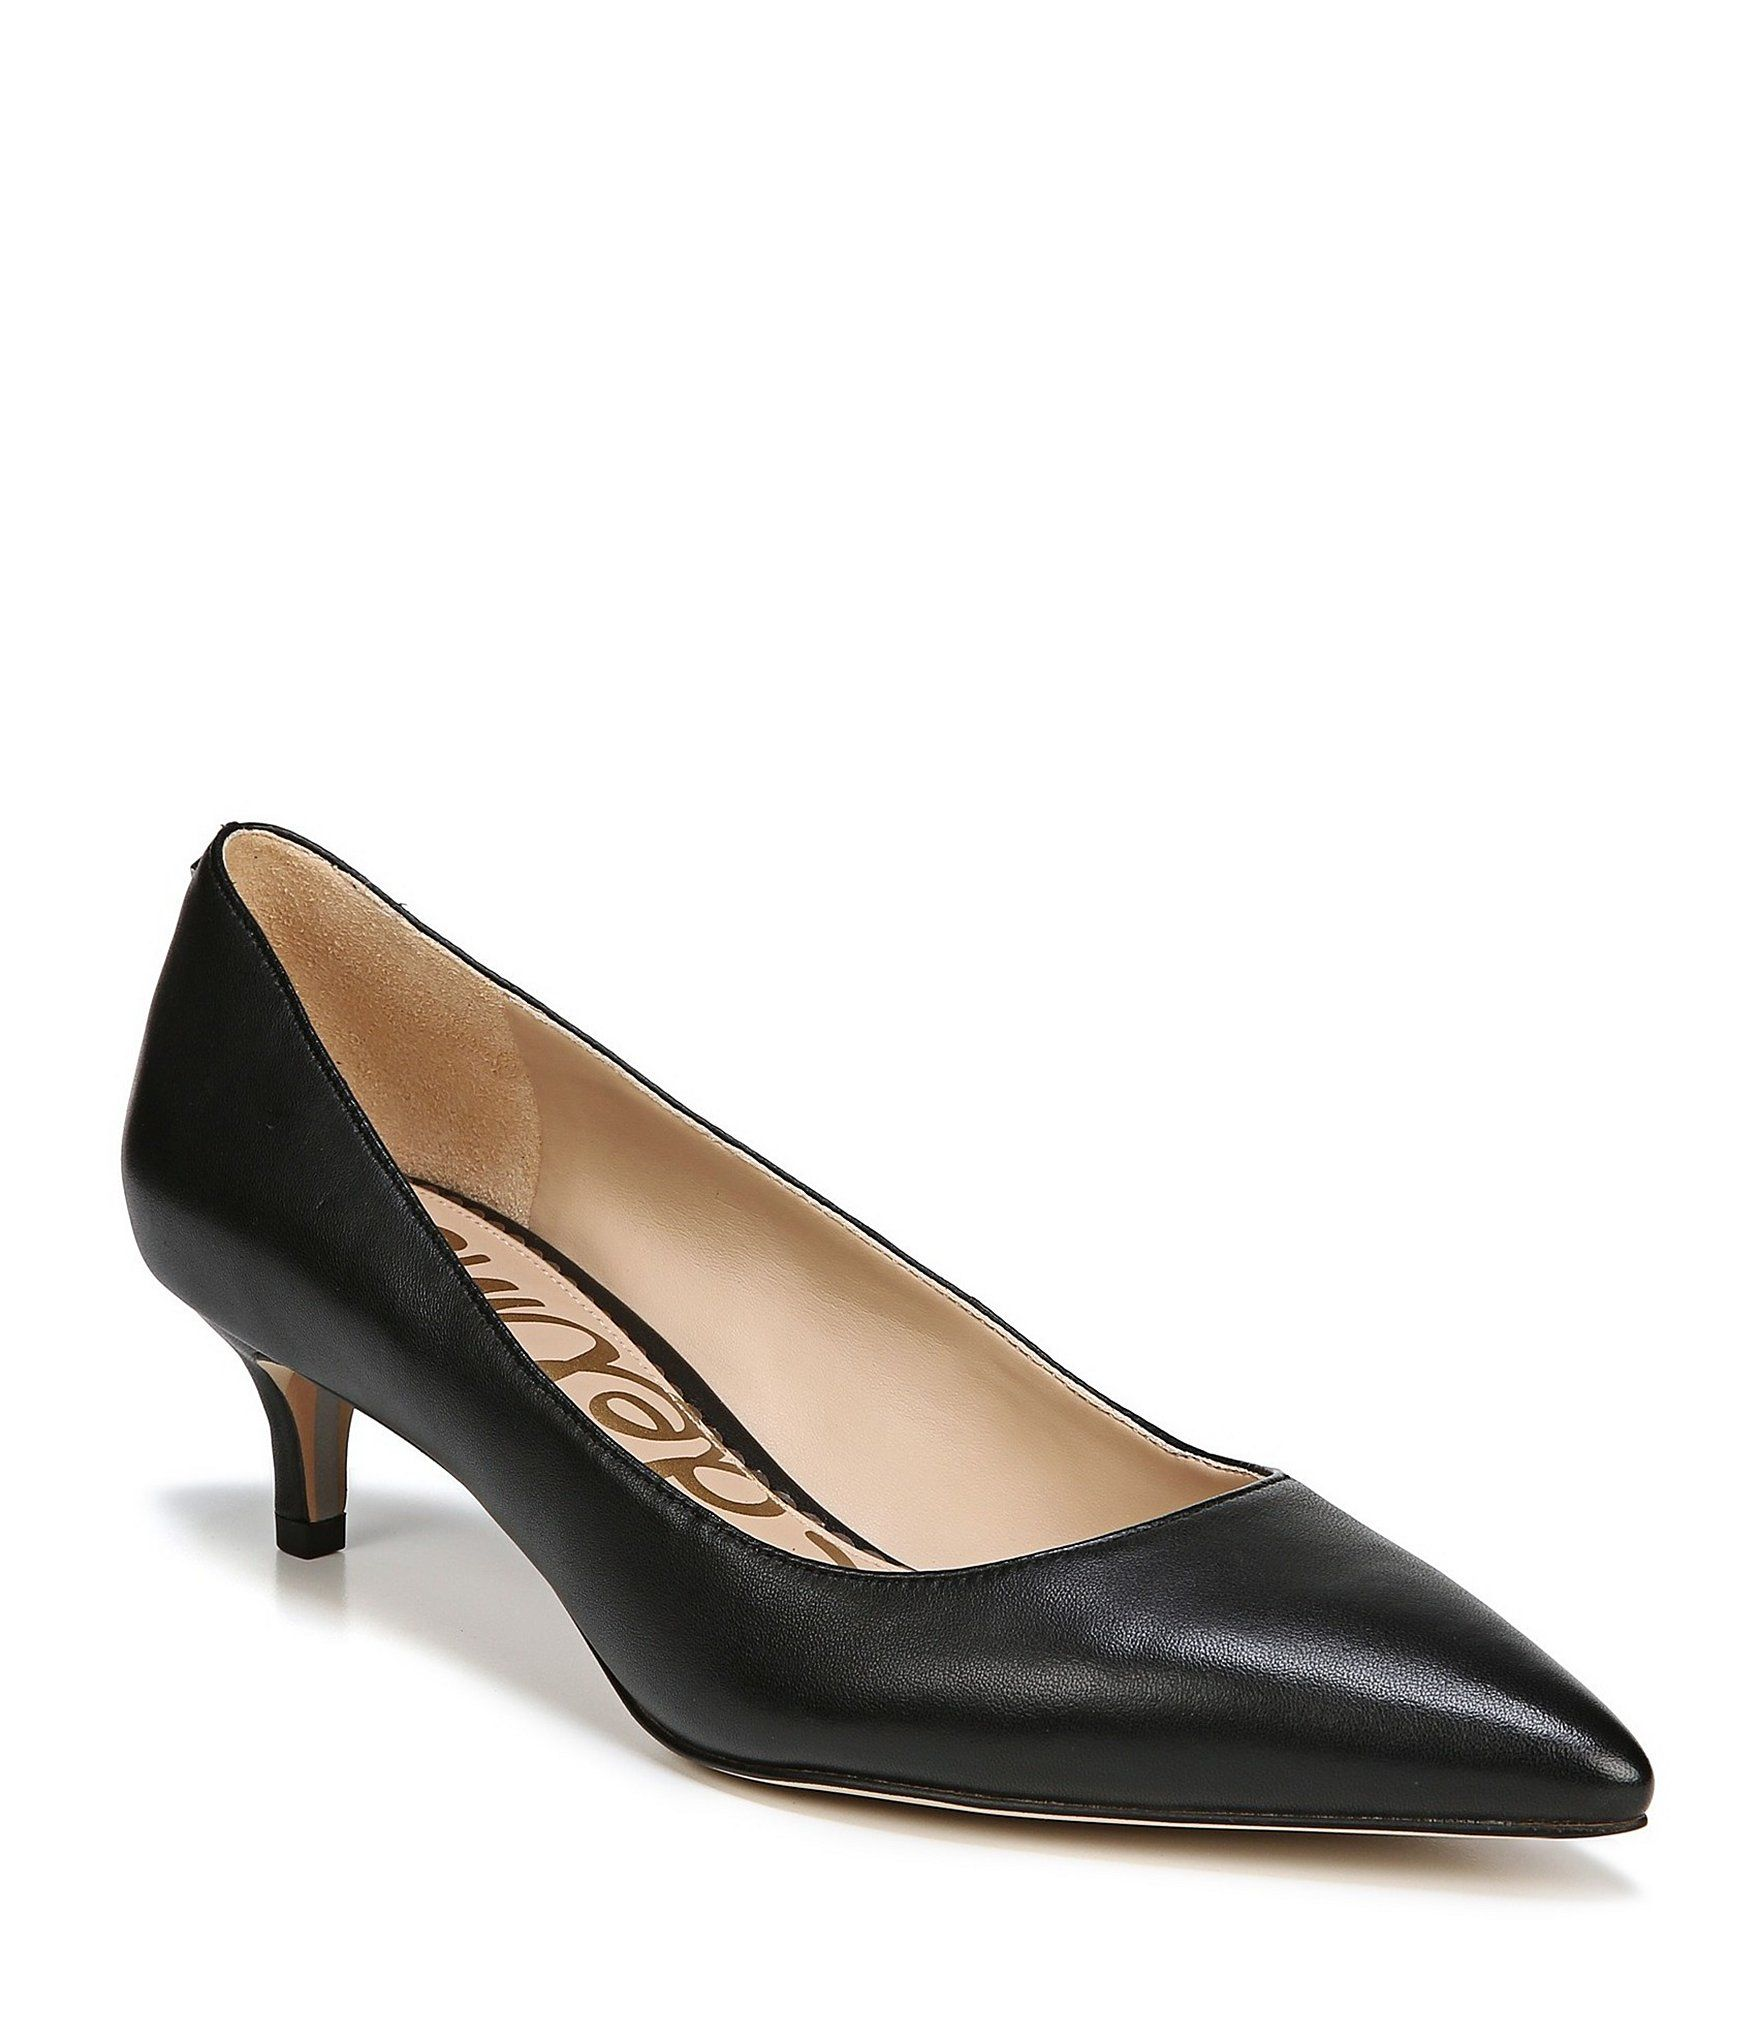 Sam Edelman Dori Leather Kitten Heel Pumps Dillard S In 2020 Kitten Heel Pumps Black Pumps Heels Kitten Heels